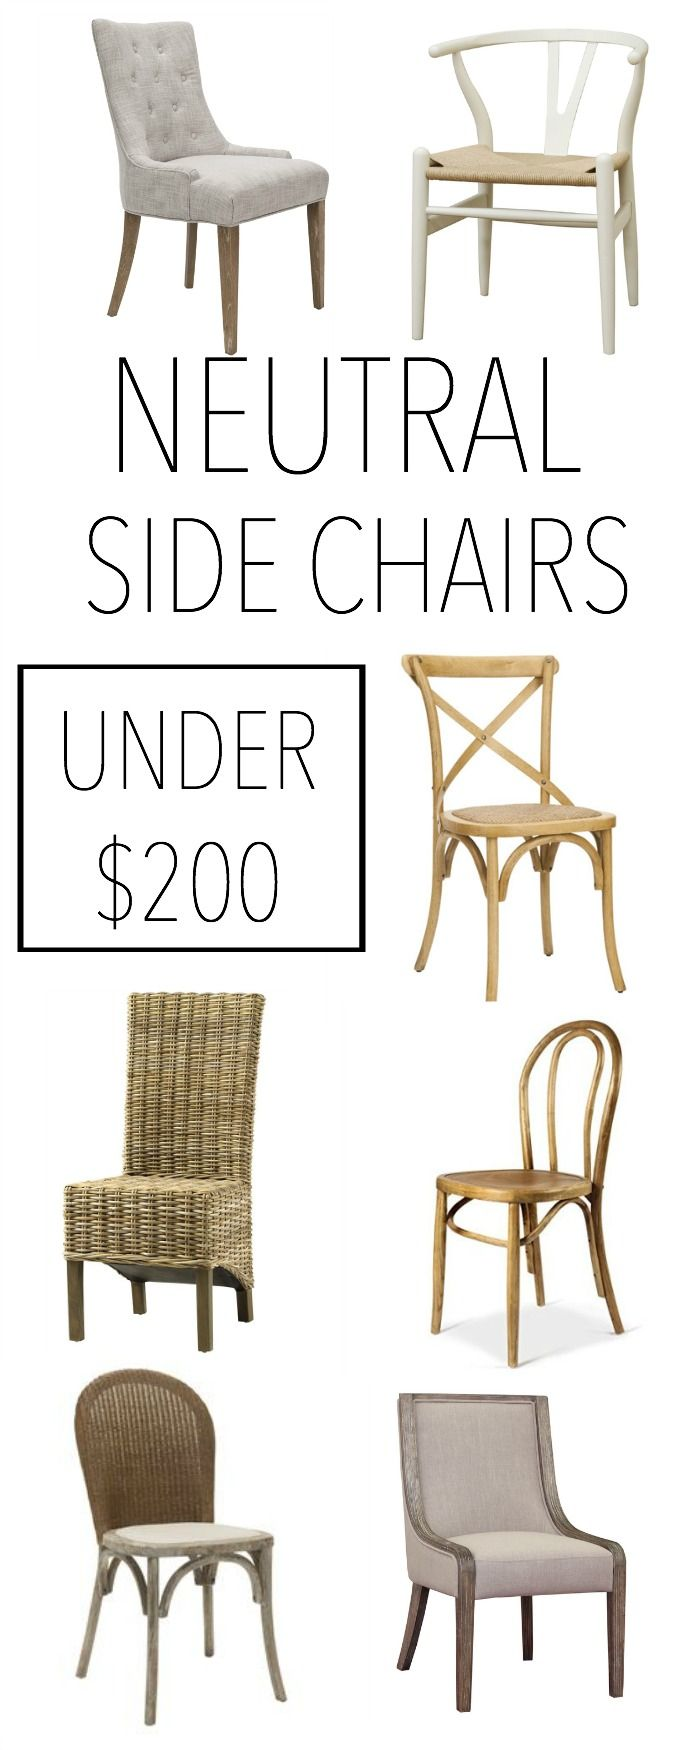 Neutral Side Chairs Under $200 | Dining Chairs, Side Chair And Decorating